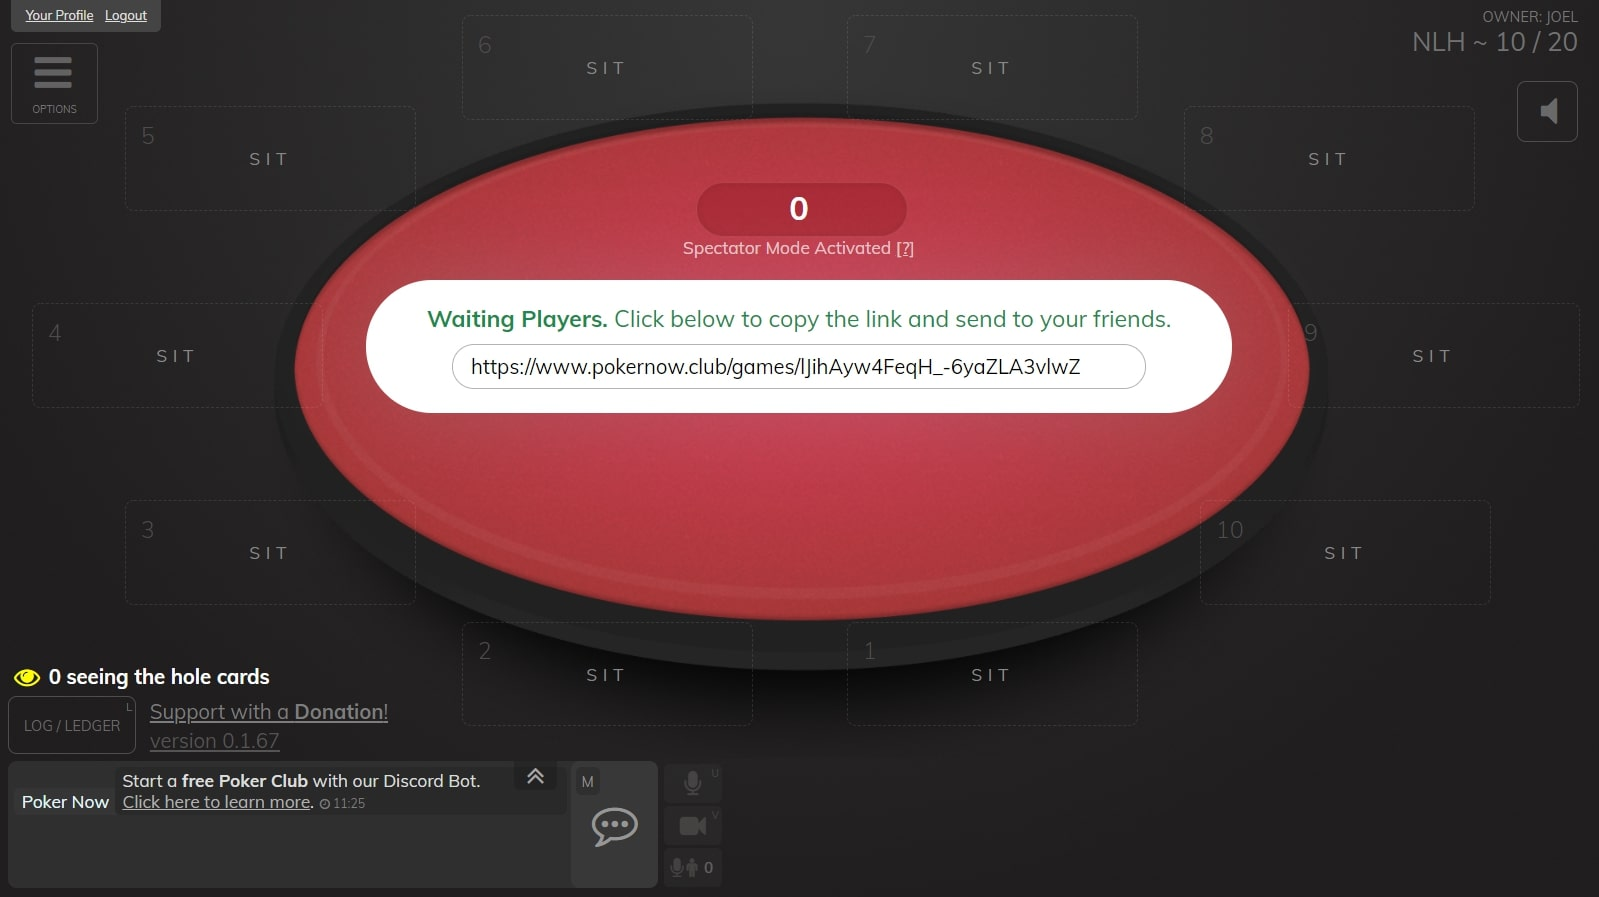 Poker now table with spectator mode activated and table red